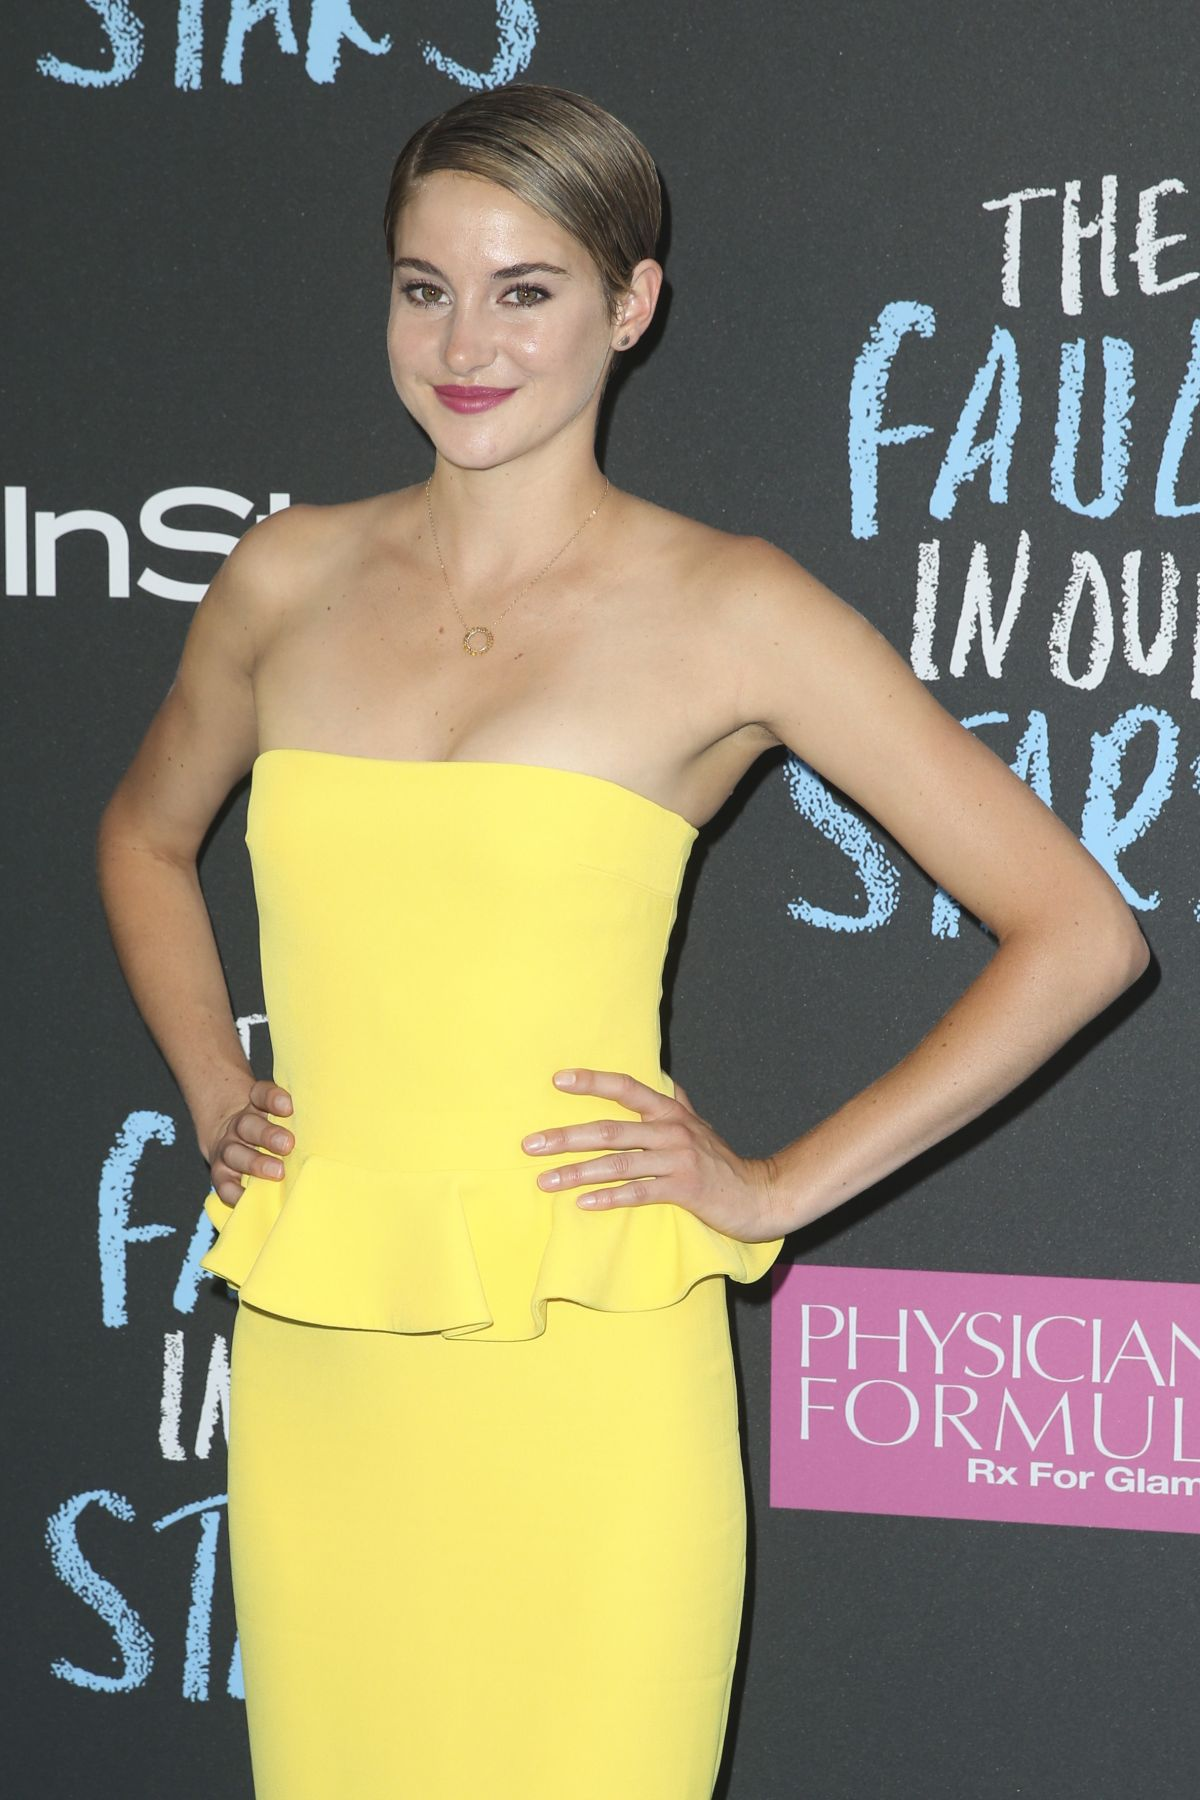 Shailene Woodley At The Fault In Our Stars Premiere In NY ...